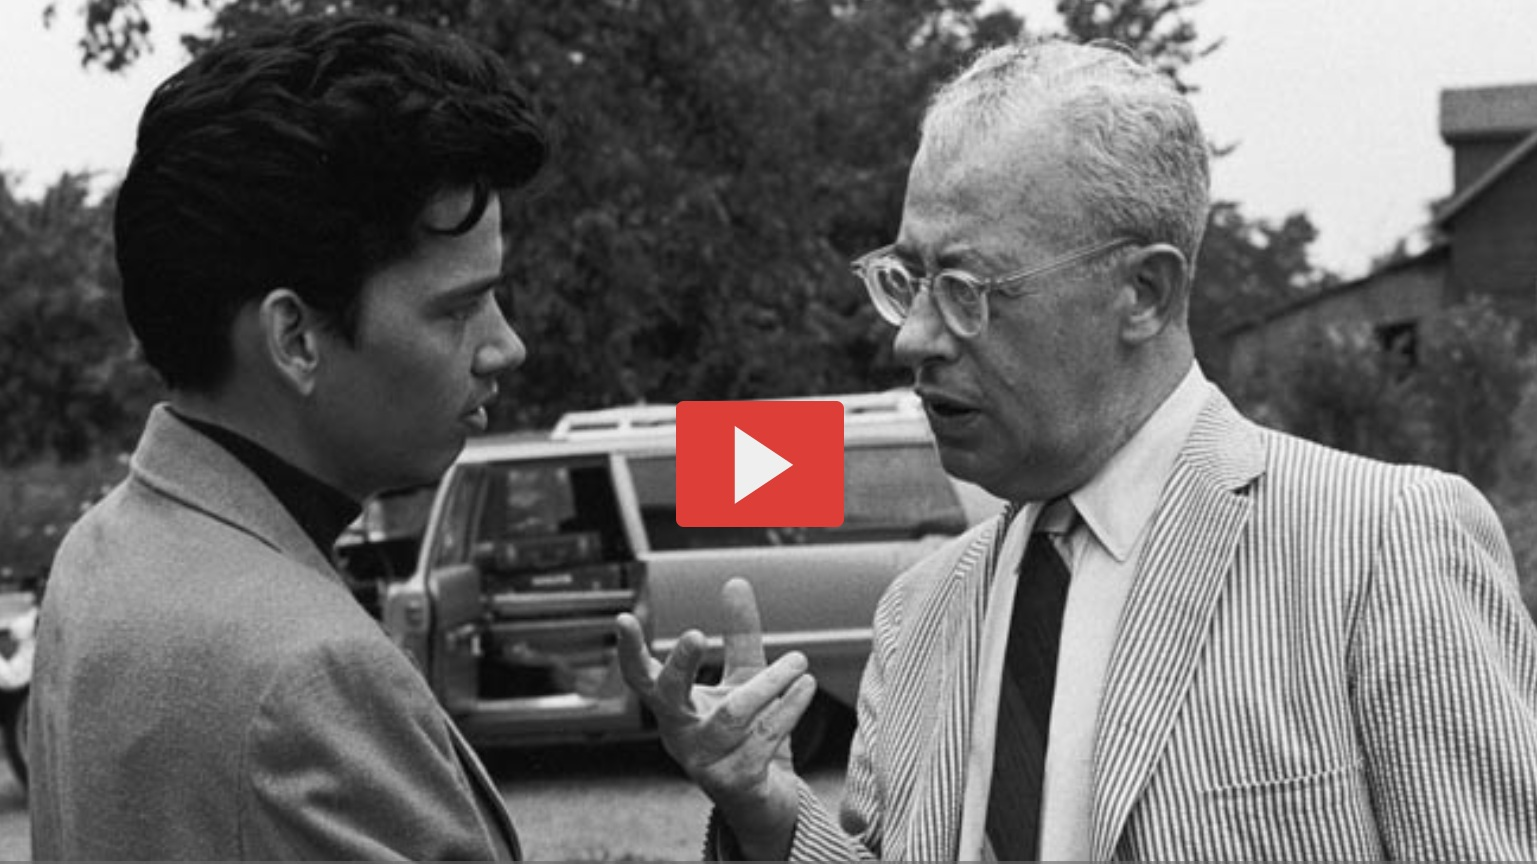 Encounter with Saul Alinsky - Part 2  Peter Pearson  1967 32 min National Film Board of Canada  In this short film, Indigenous youth test their inherently tolerant philosophy against the more pragmatic ideas of  Saul Alinsky . The Indians argue for a revision of the hundred-year-old Indian Act by peaceful persuasion. Alinsky advocates a more direct development of power to bring about the changes they seek.